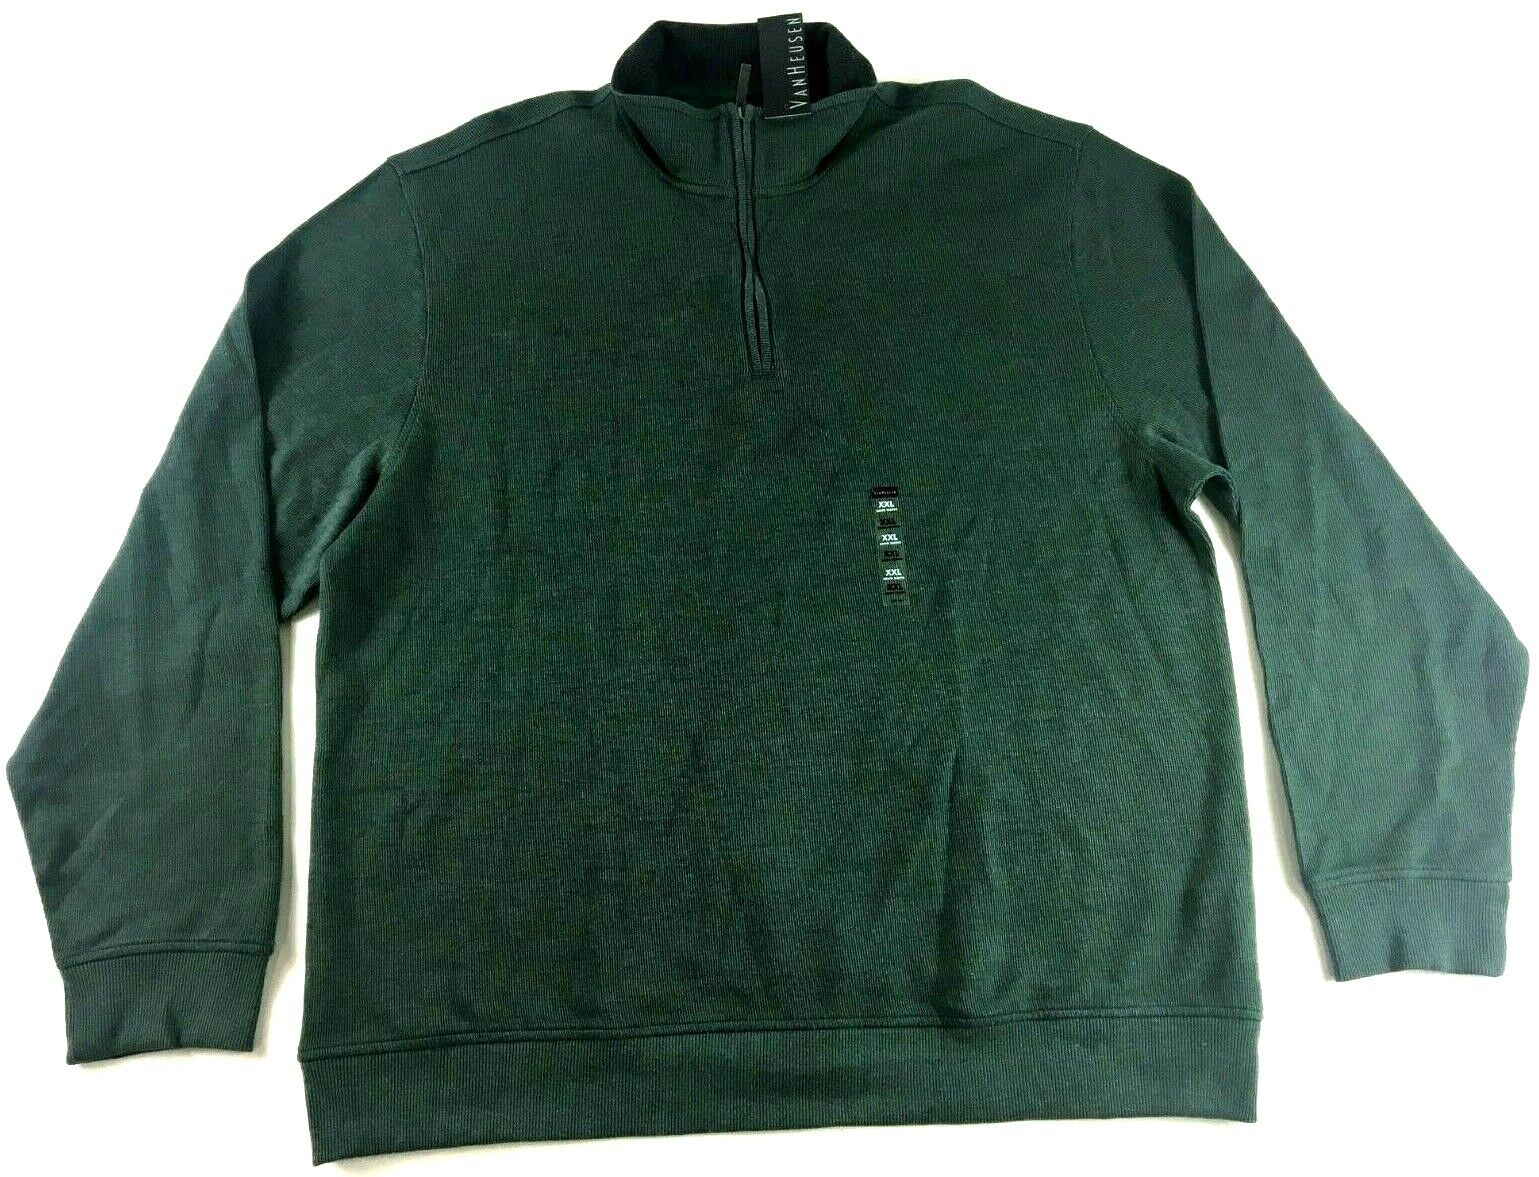 Van Heusen New Mens Green Long Sleeve 1 4 Zip Sweater Size 2XL